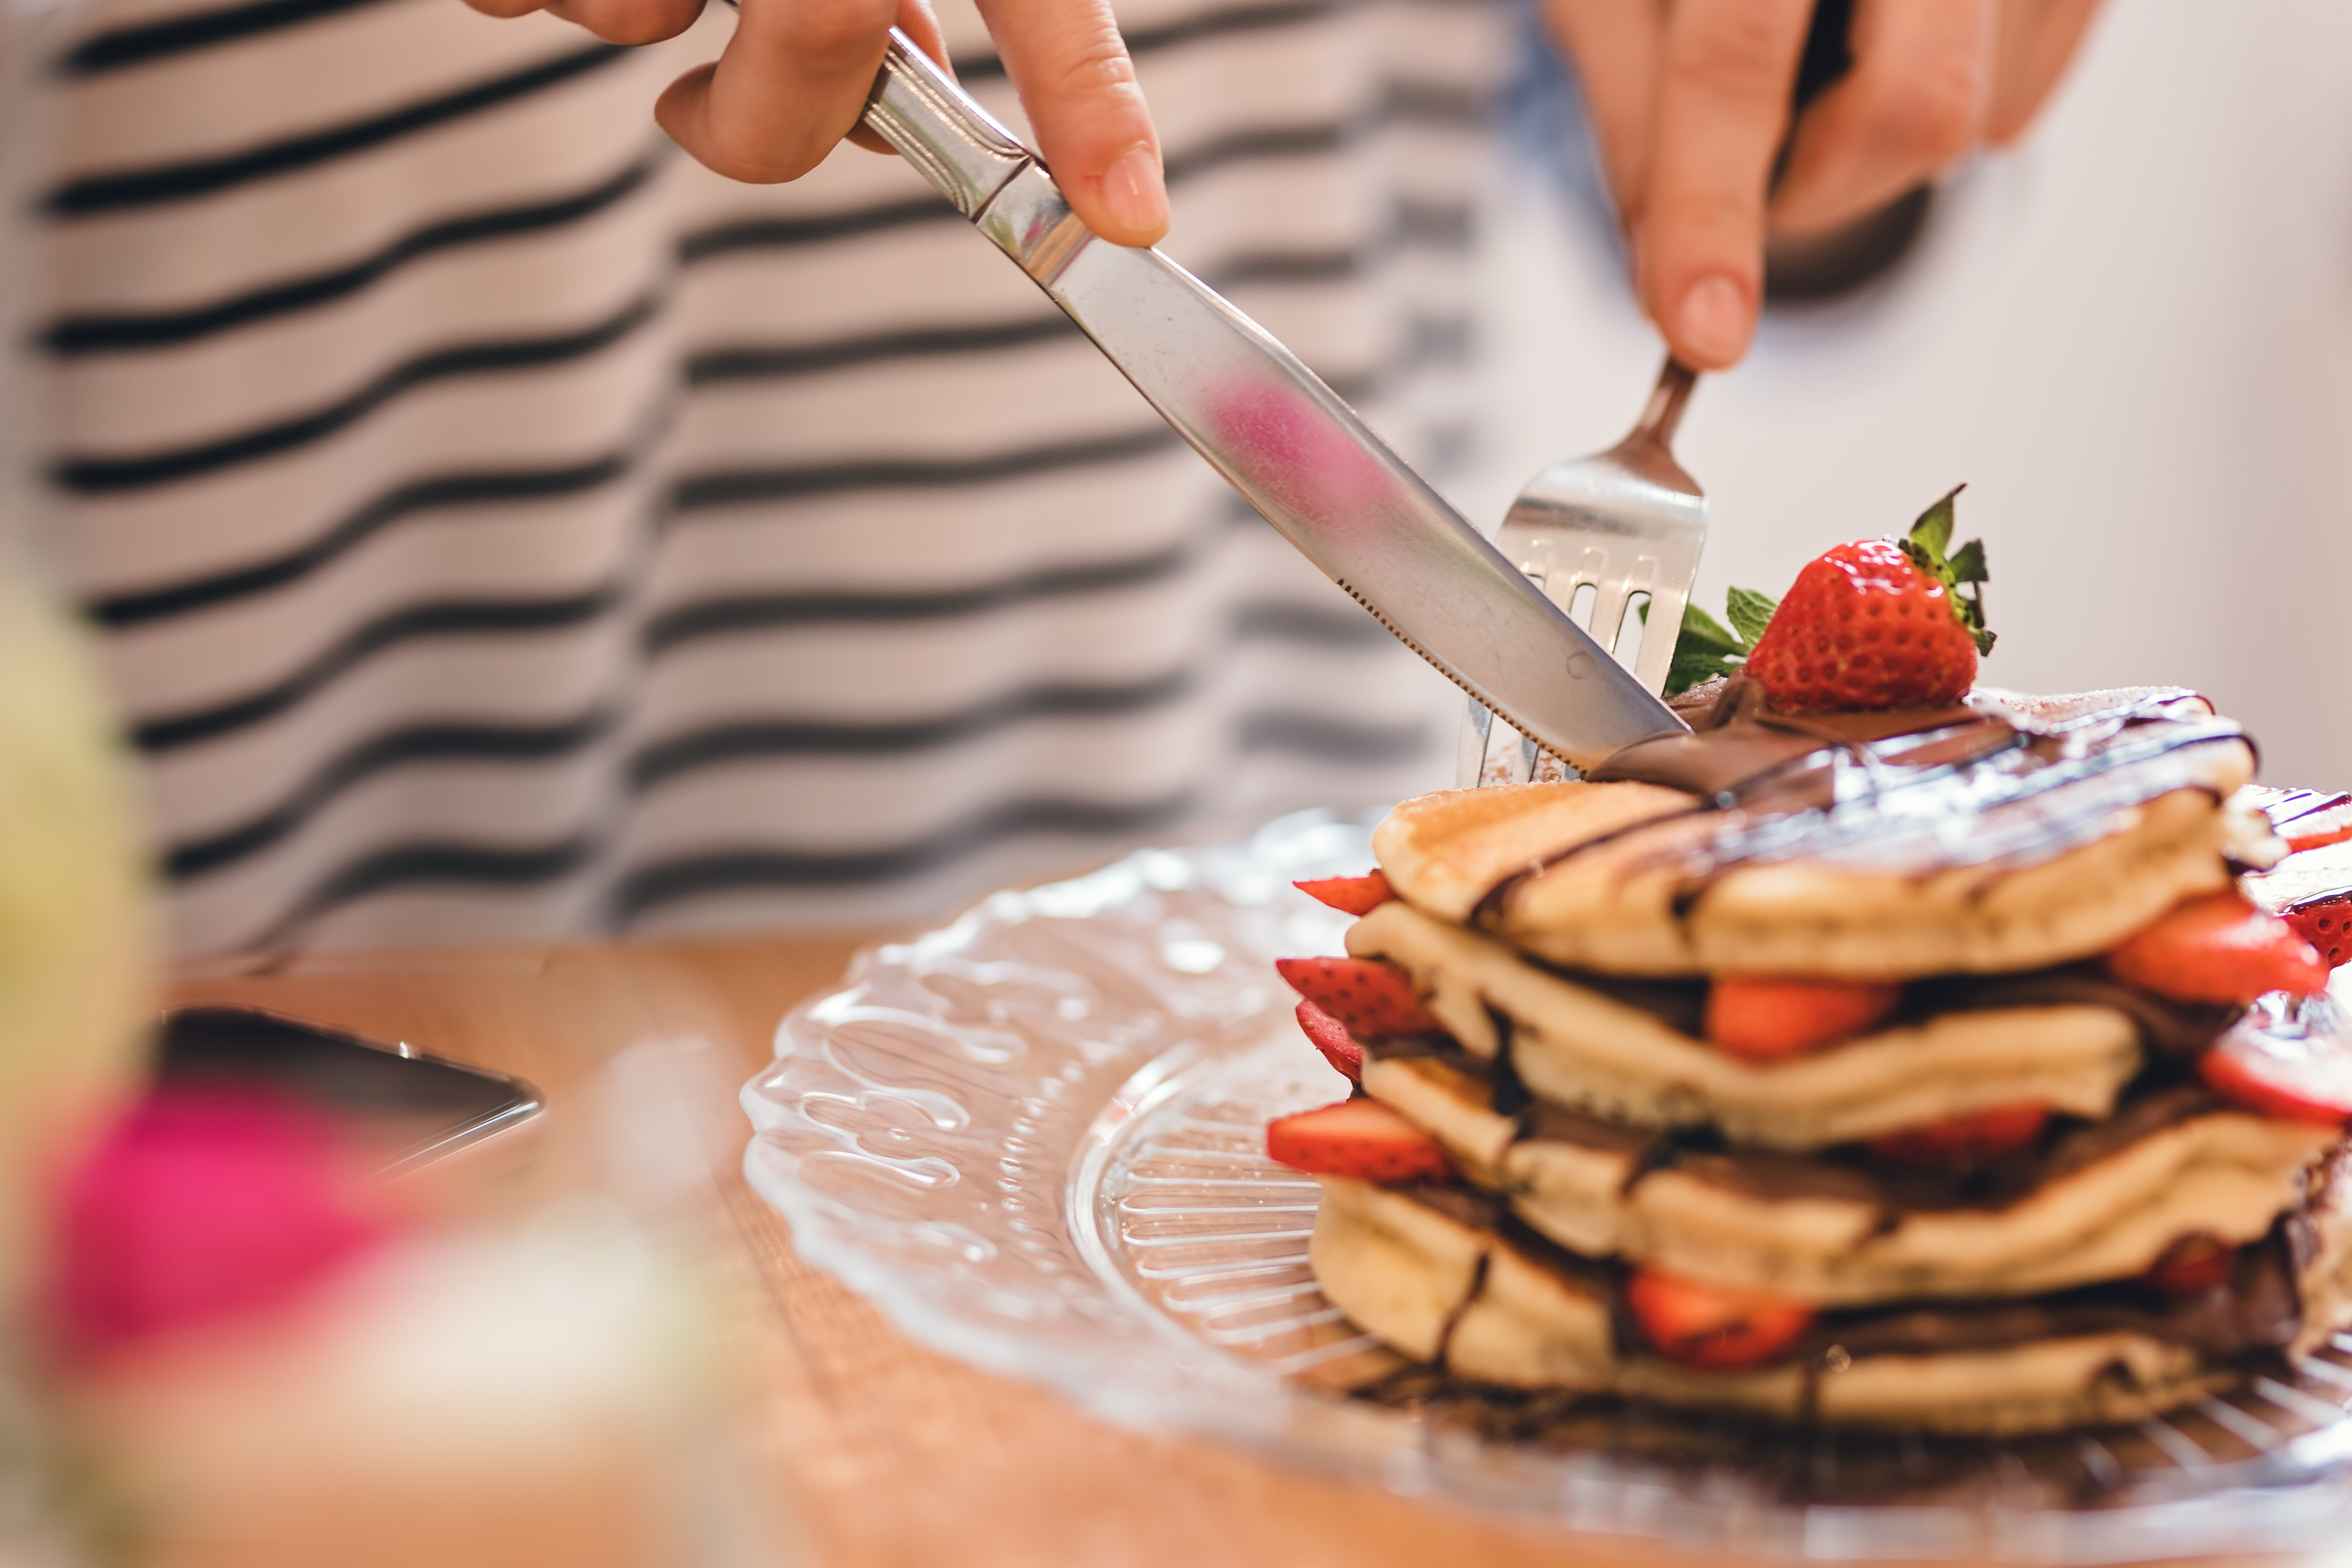 Immensely inviting ideas to choose from this Pancake Chooseday!